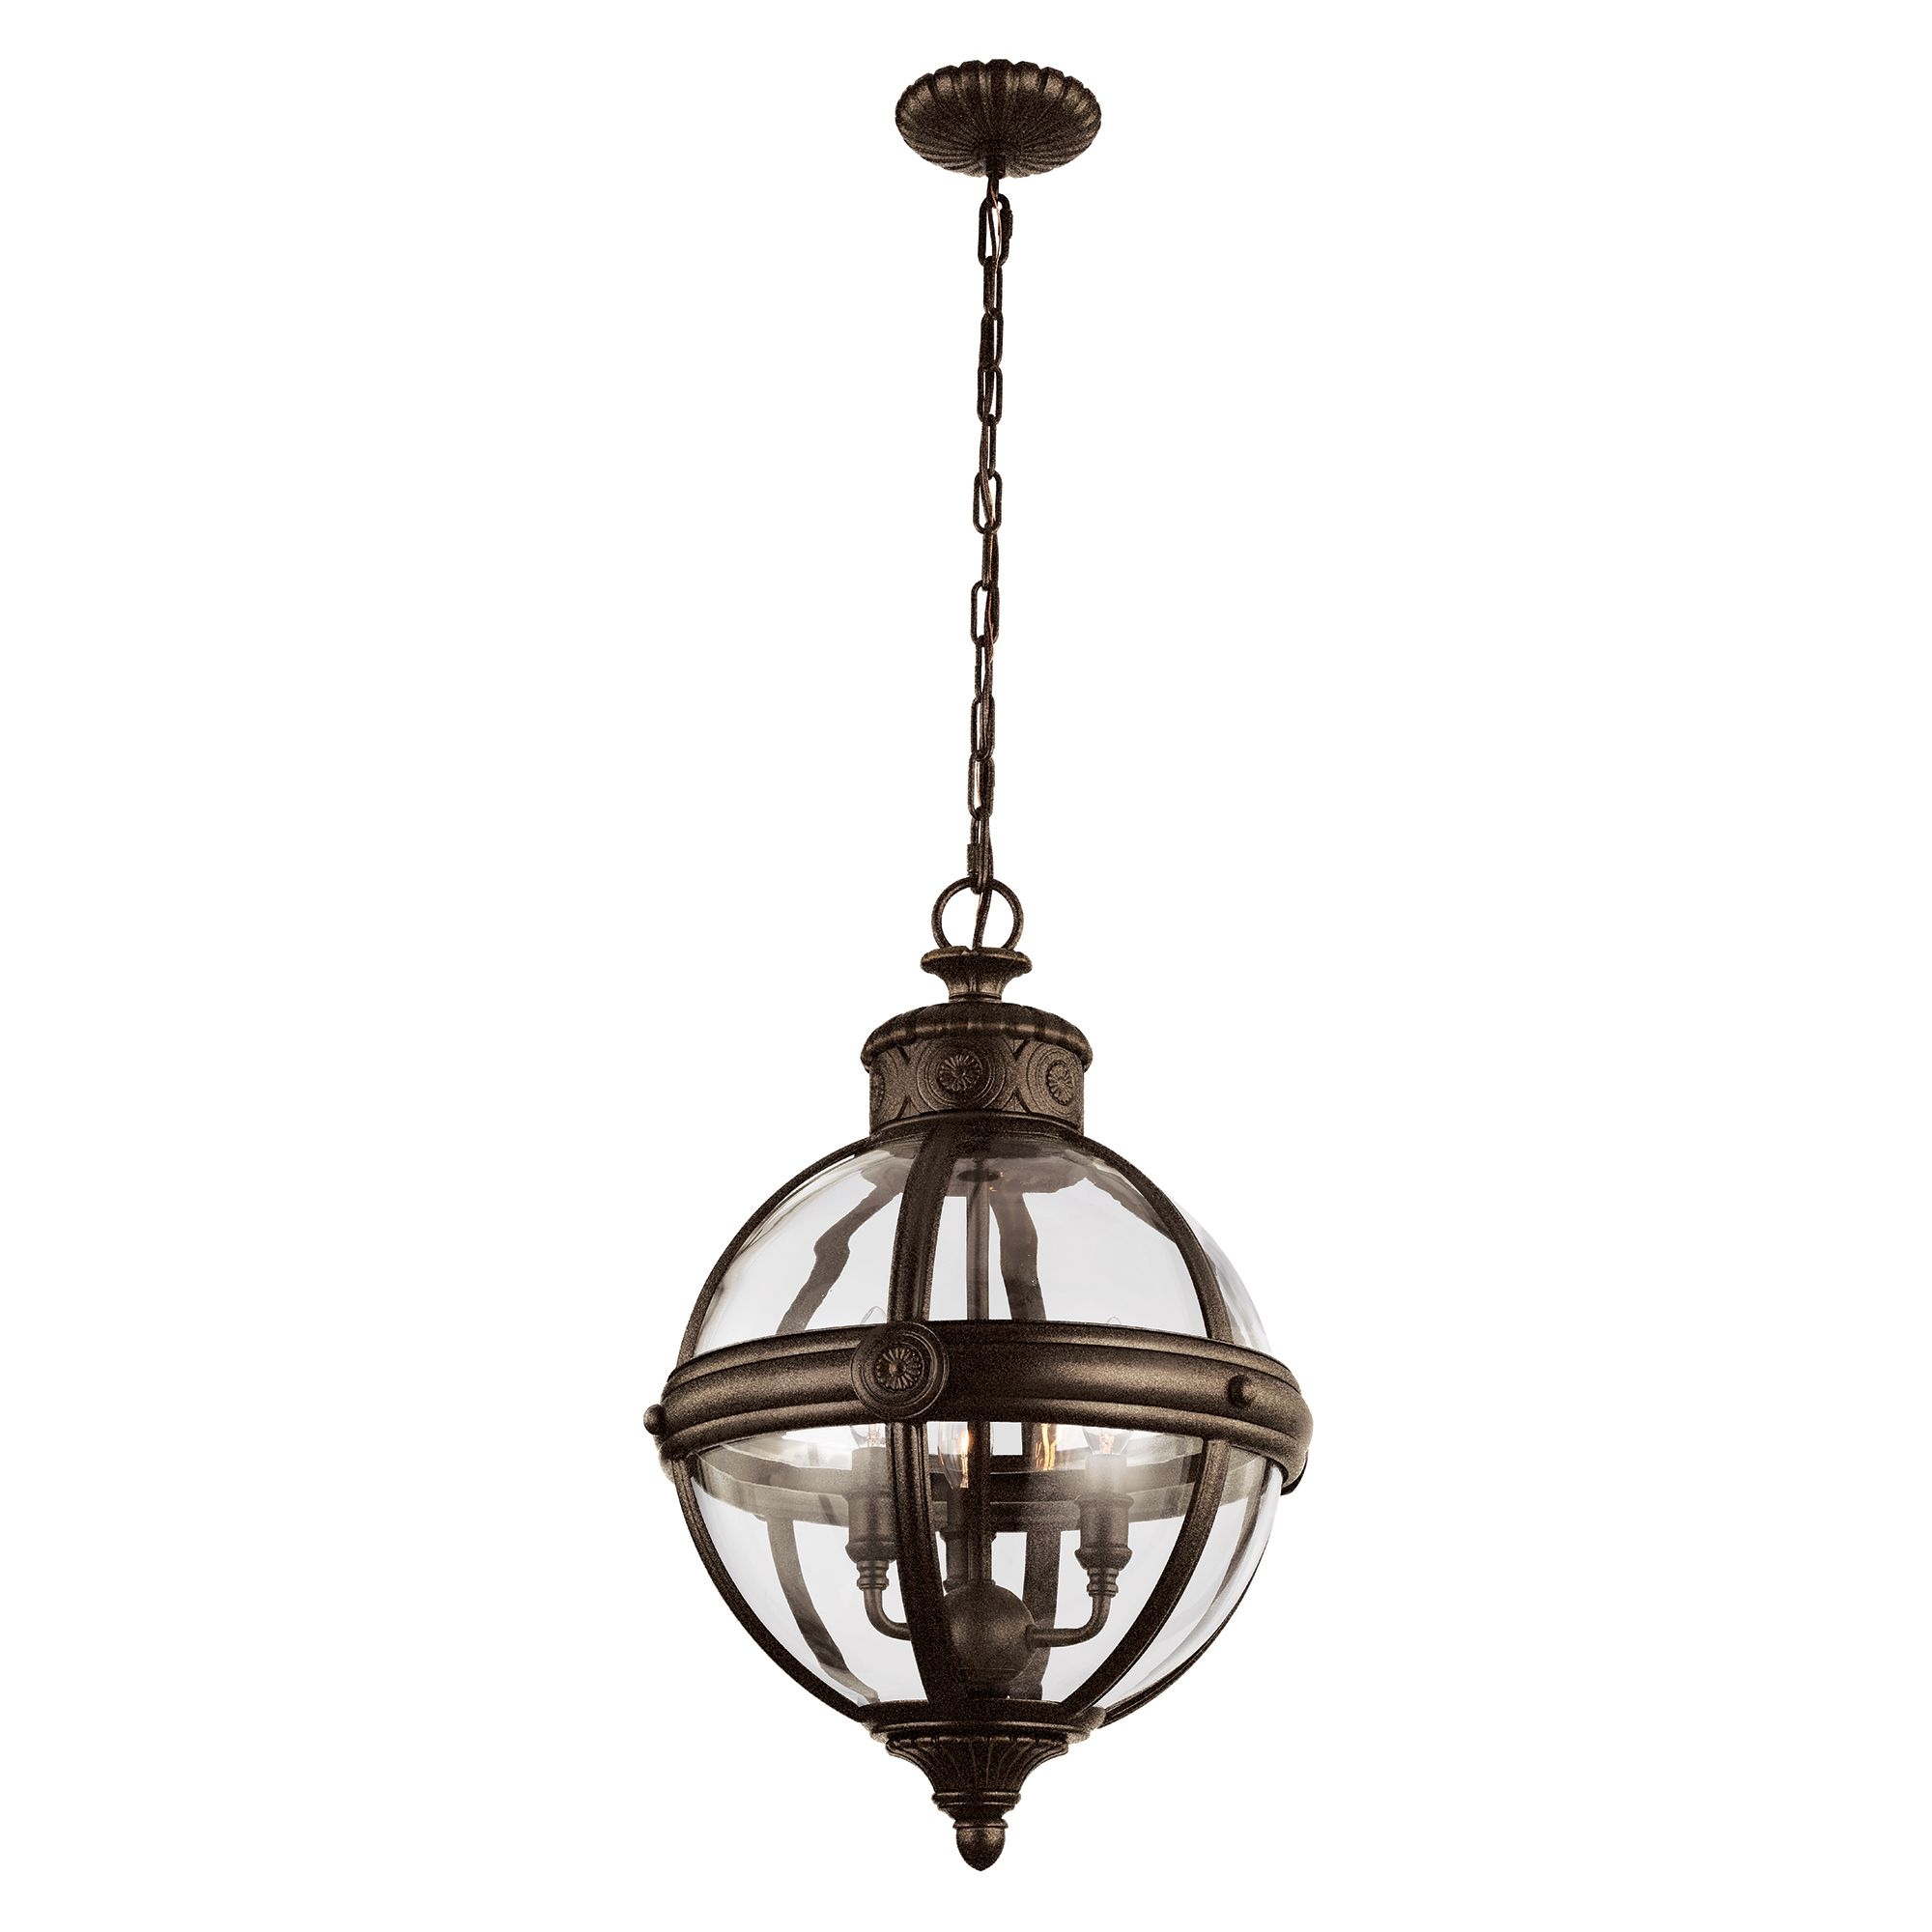 Adams 3 Light Pendant In A Bronze Finish With A Clear